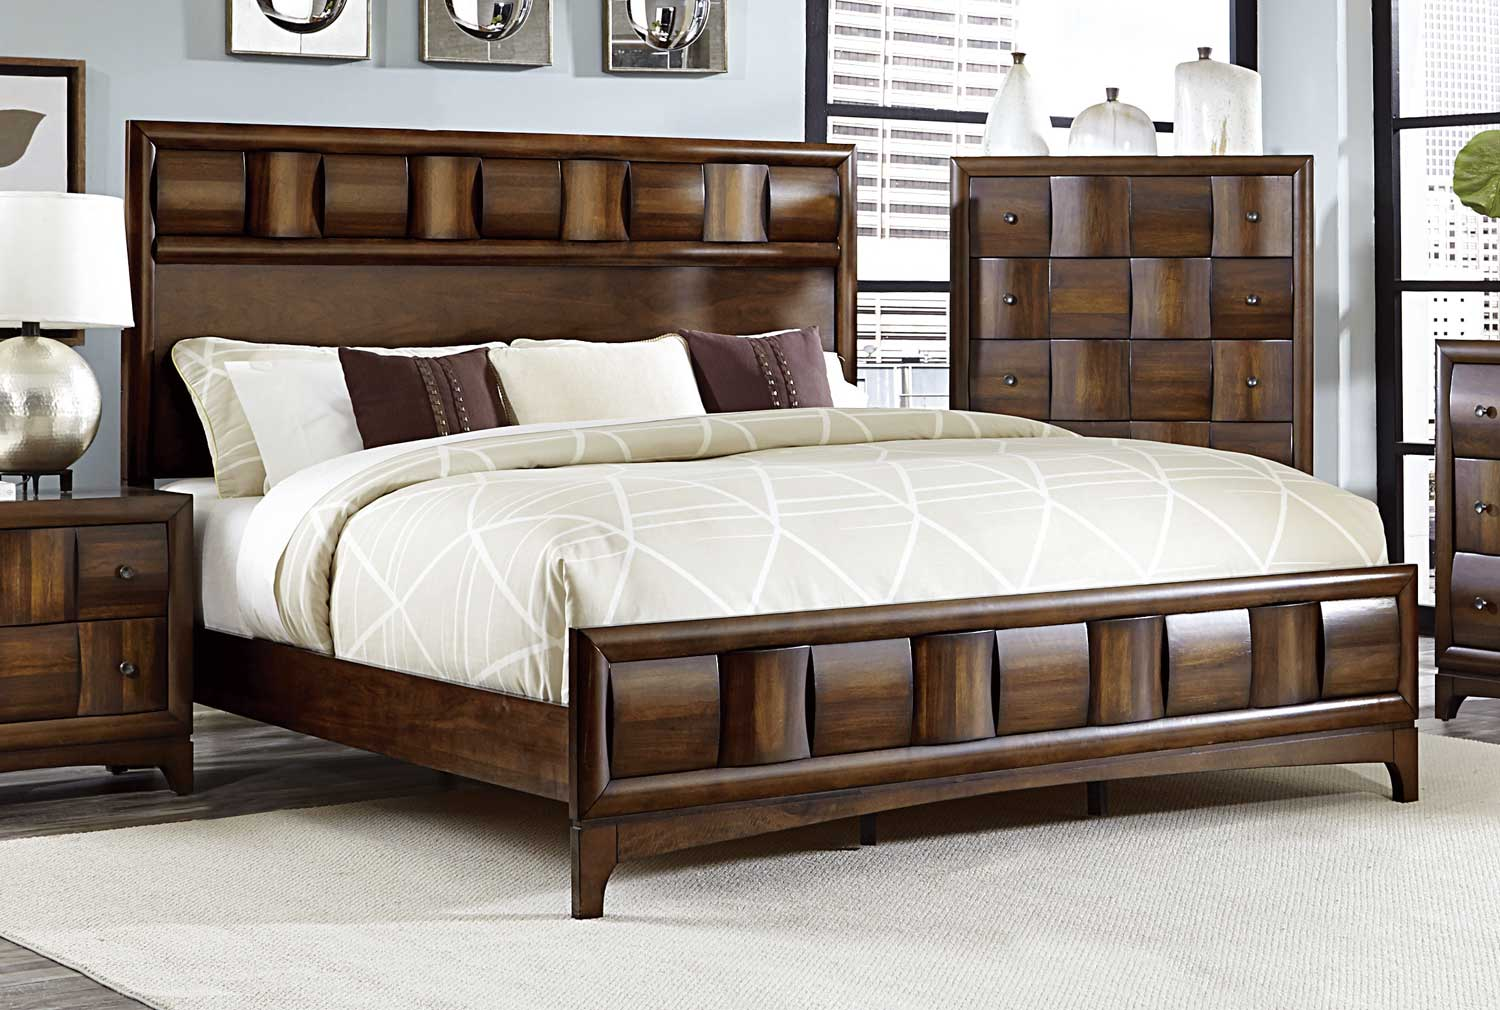 Homelegance Porter Bed - Warm Walnut